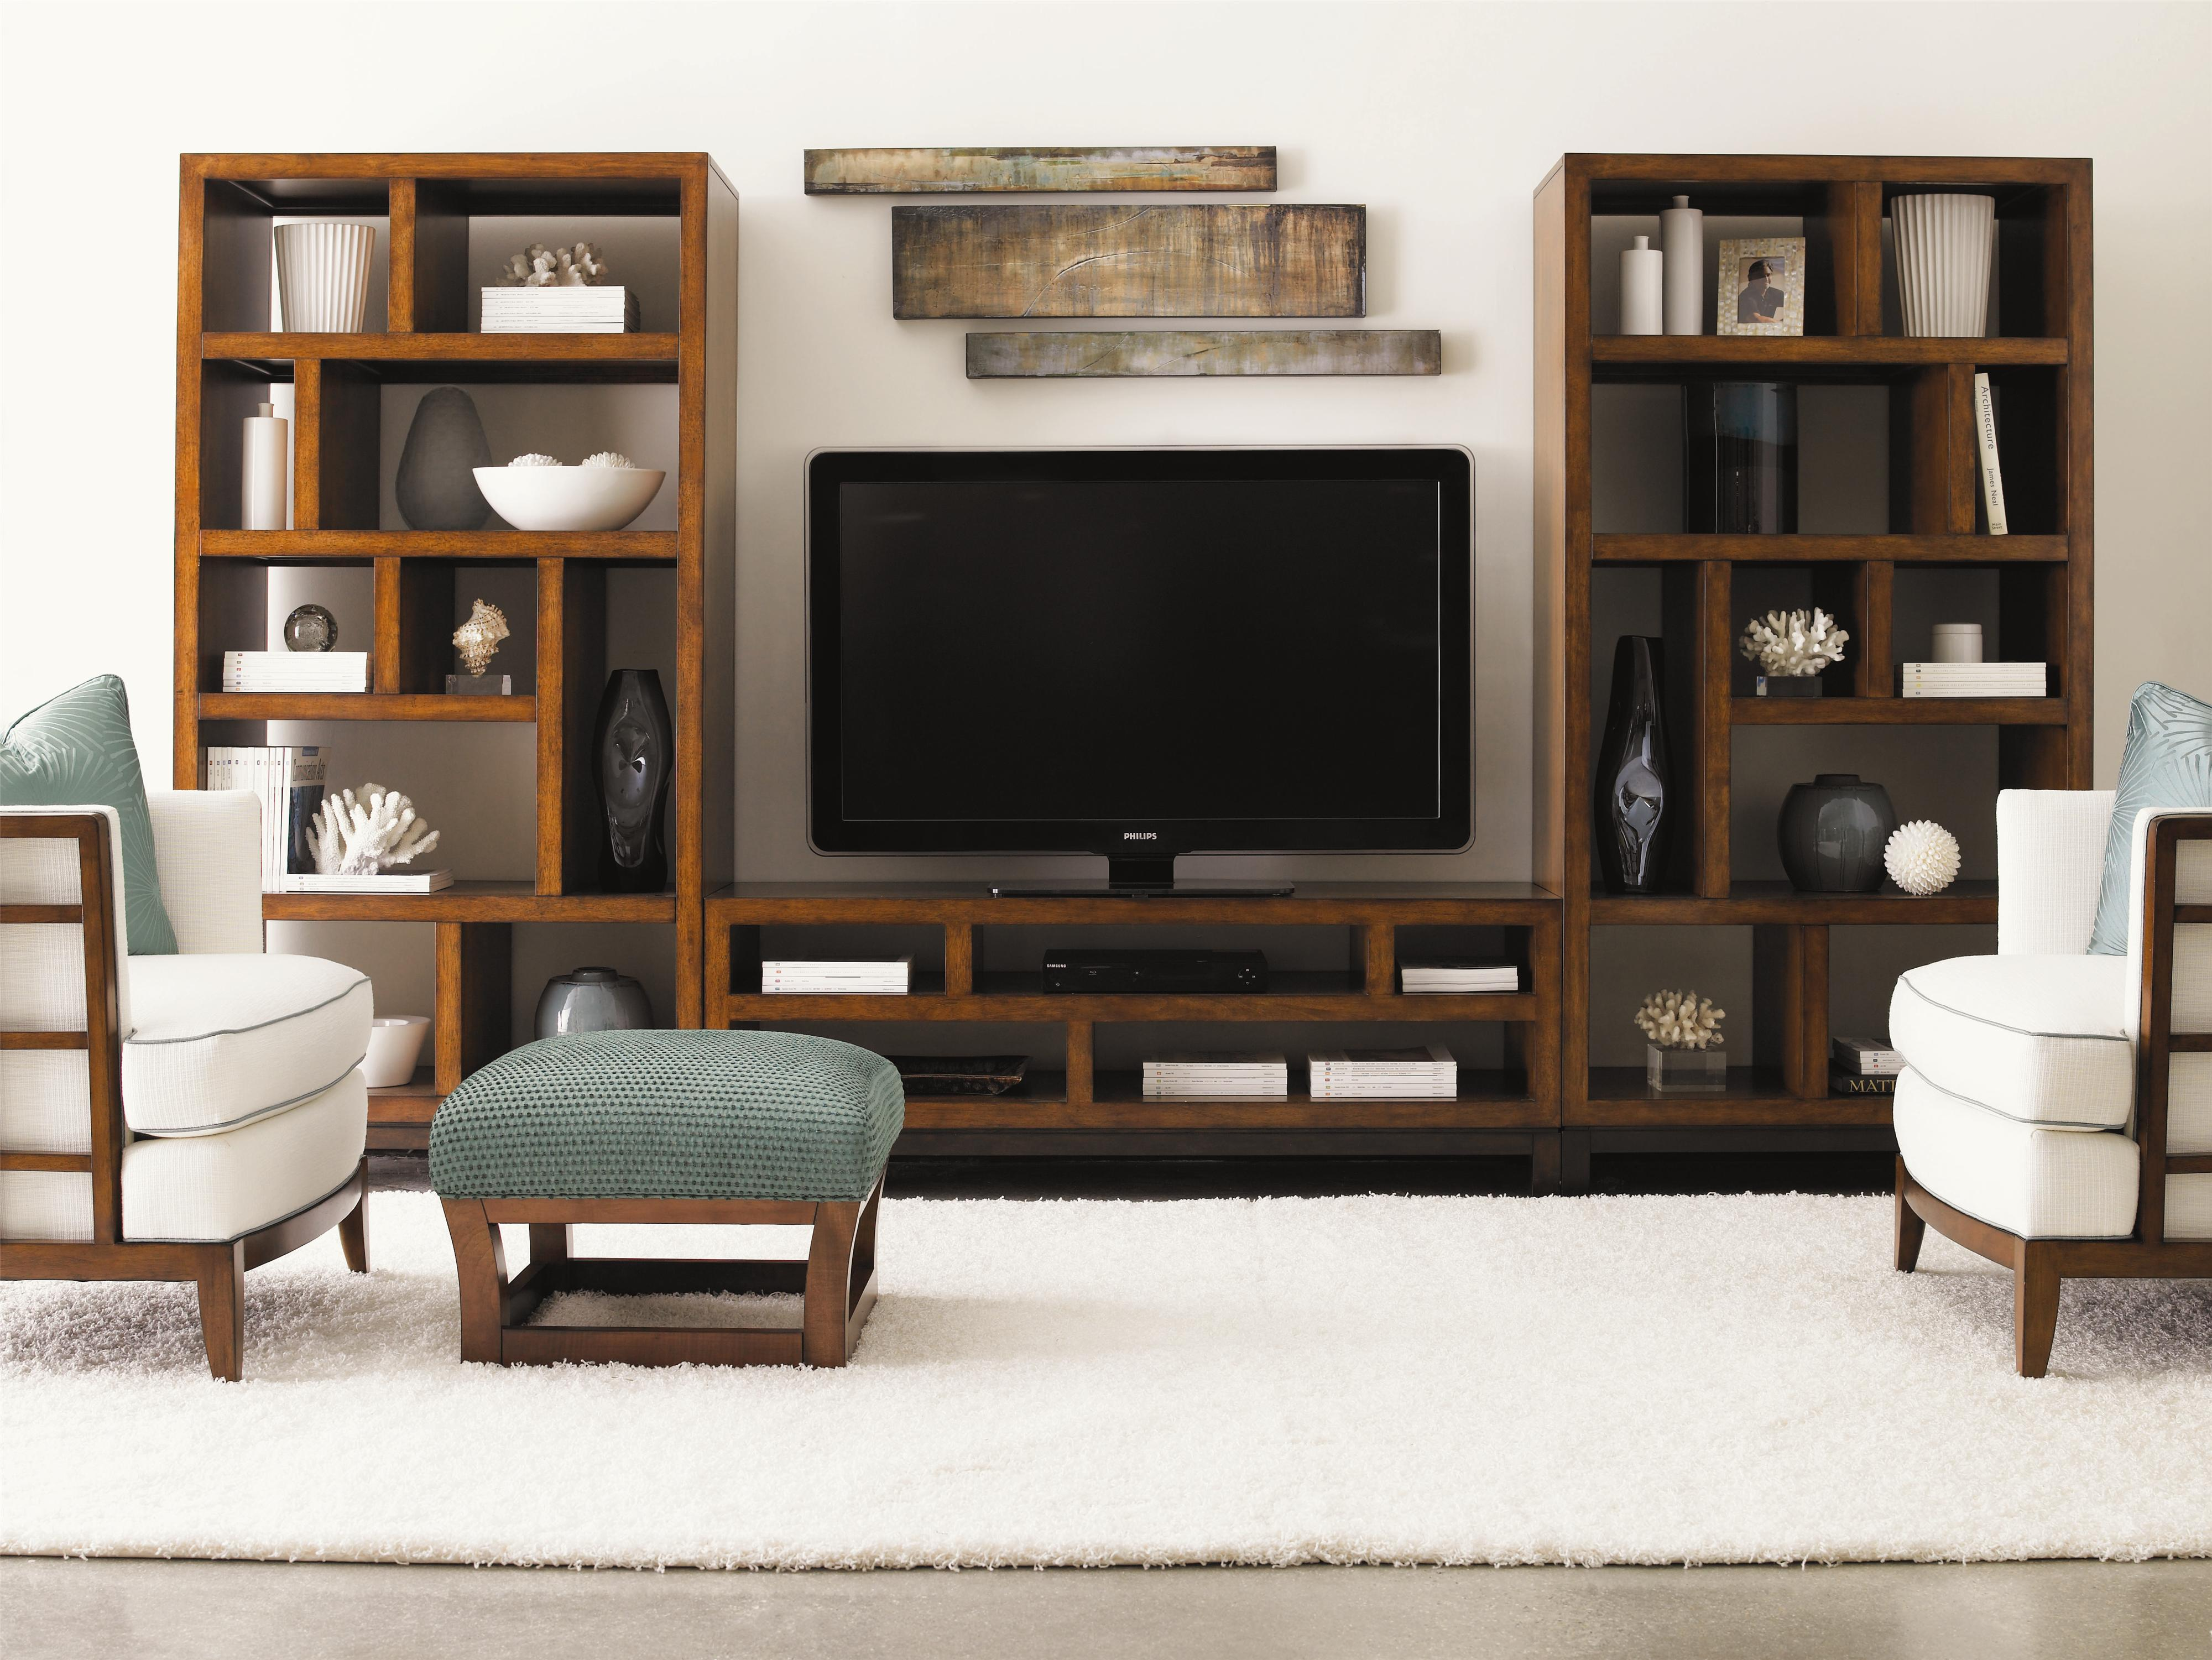 Tommy Bahama Home Ocean Club 536 909 2x991 Pacifica Entertainment Console Two Tradewinds Bookcases Etegeres Wall Unit Baer S Furniture Wall Unit